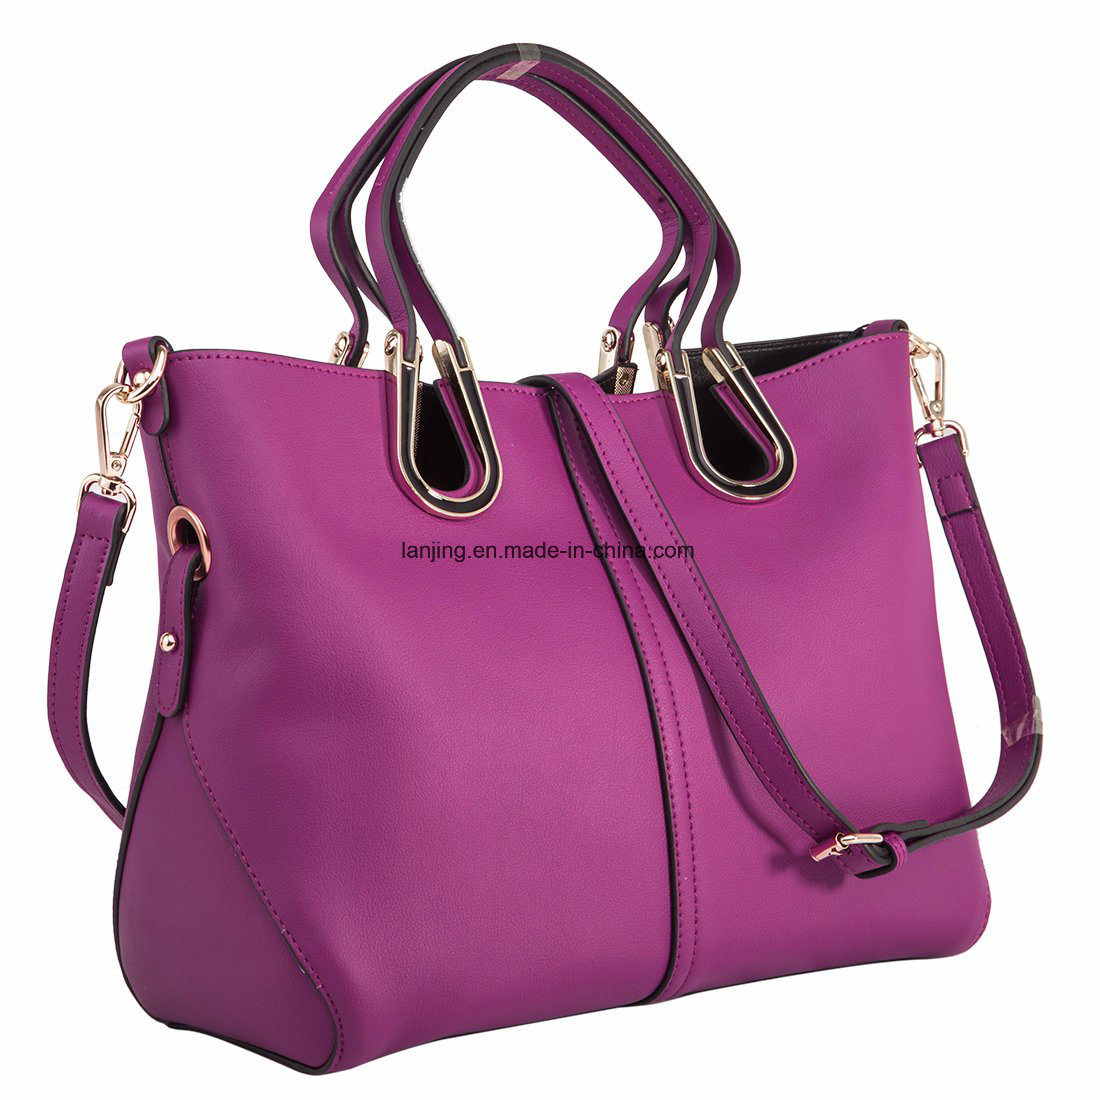 Bw1-009 Fashion Korean Women′s Shoulder Bag OEM Ladies Handbags